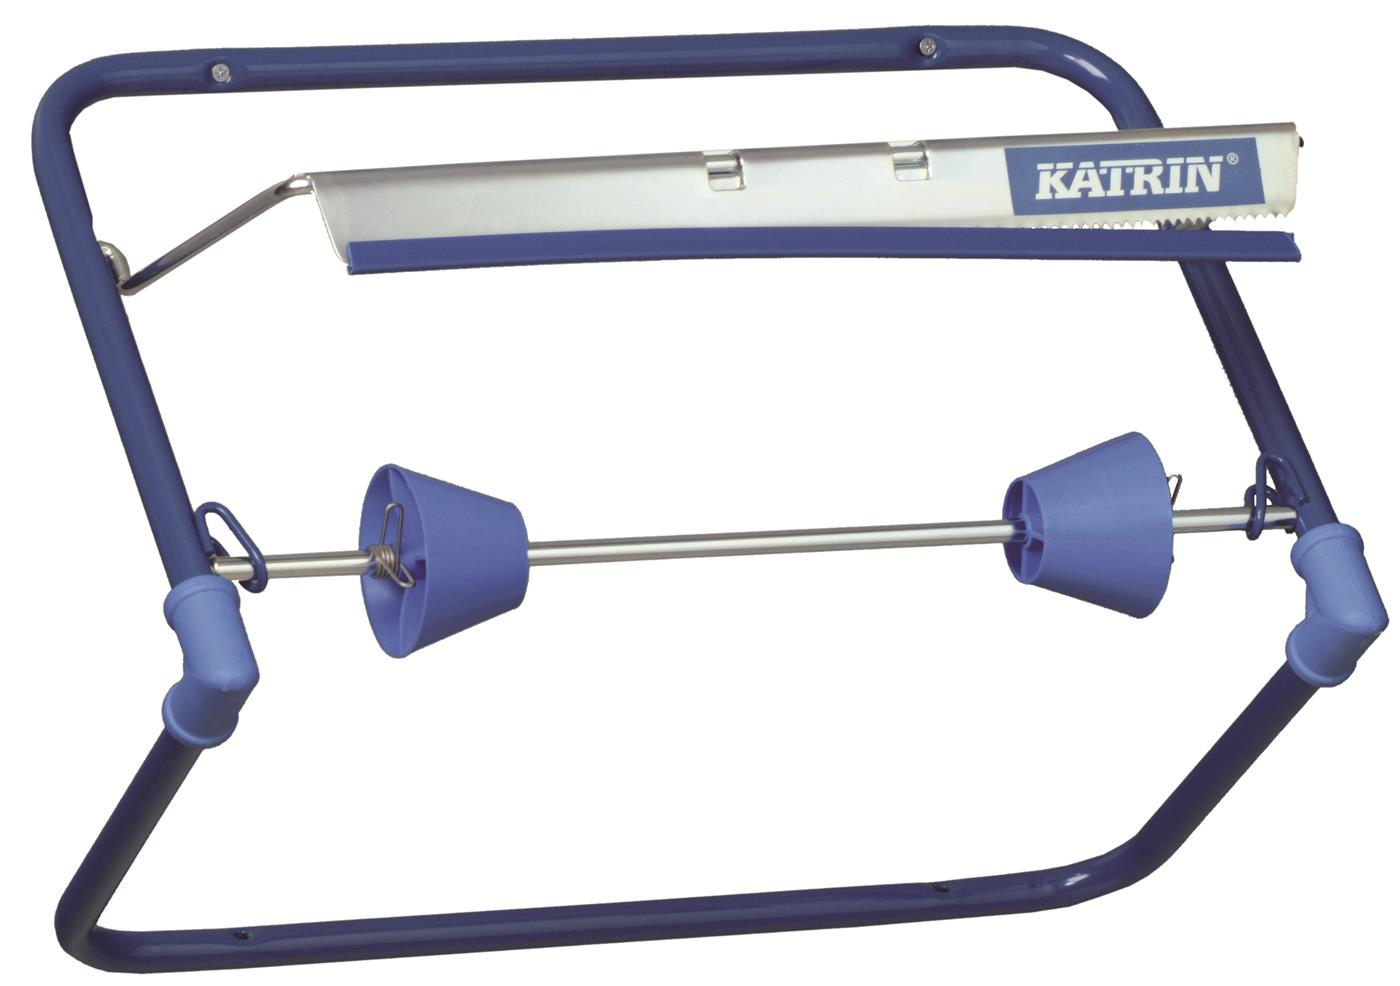 Katrin Blue Steel Wiping Roll Wall Dispenser